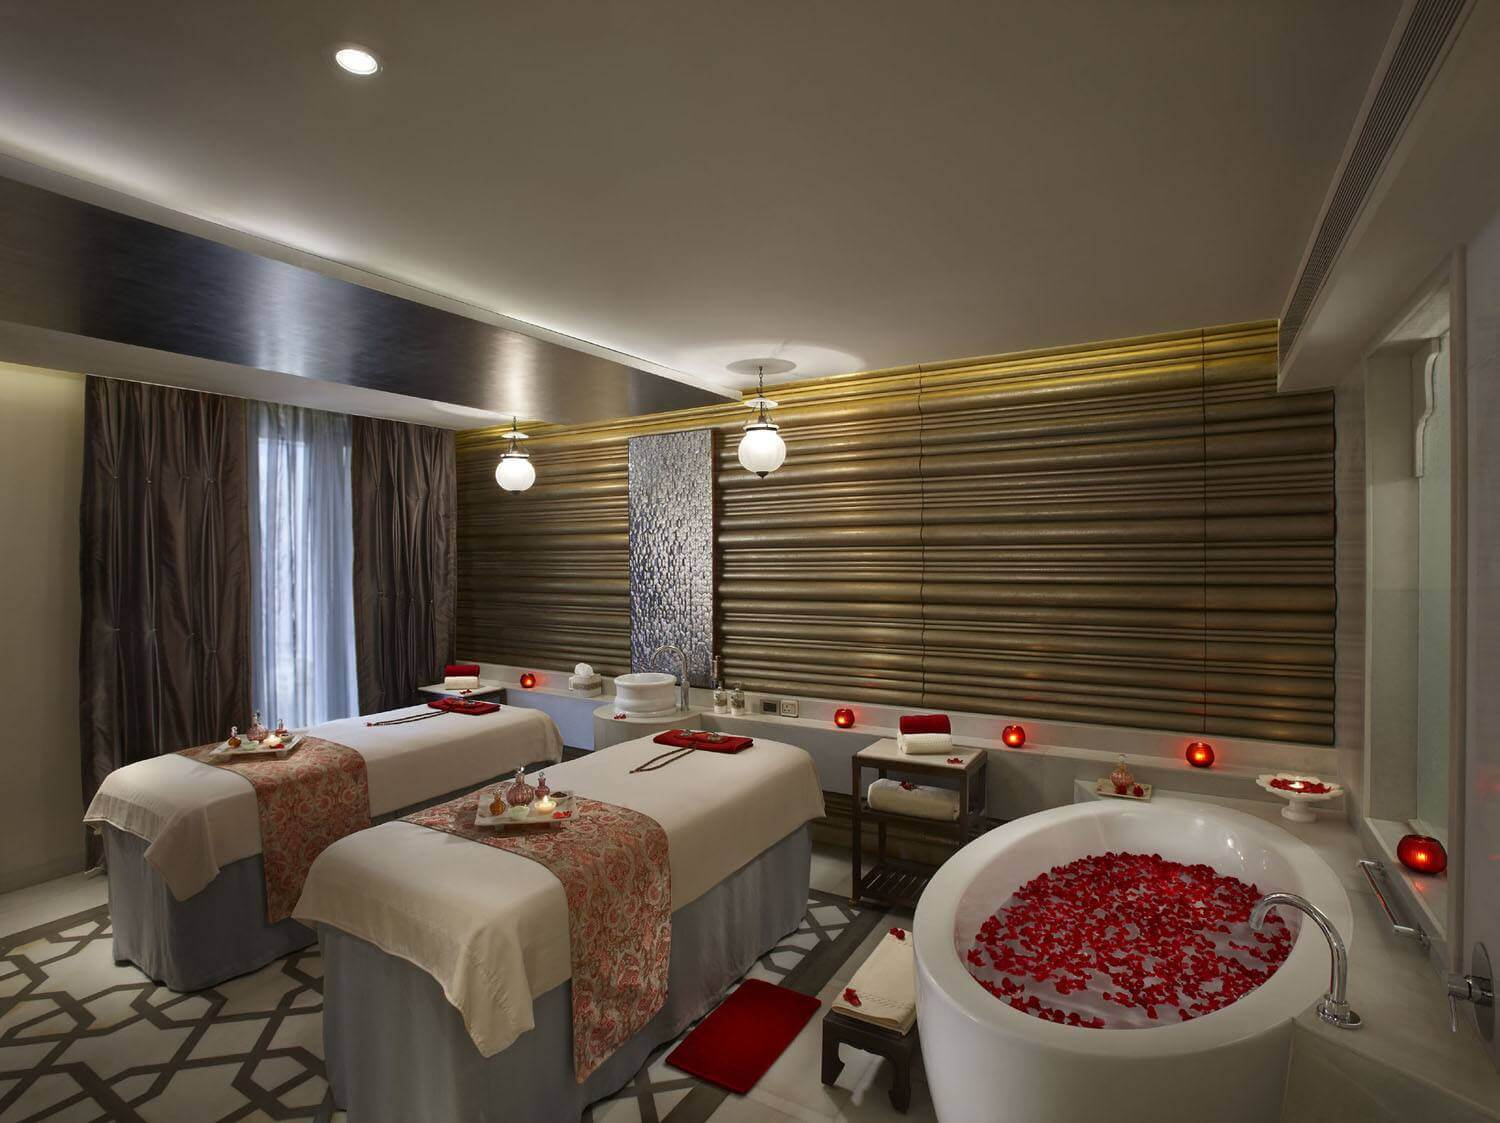 11-Spa-Suite-Treatment-Room